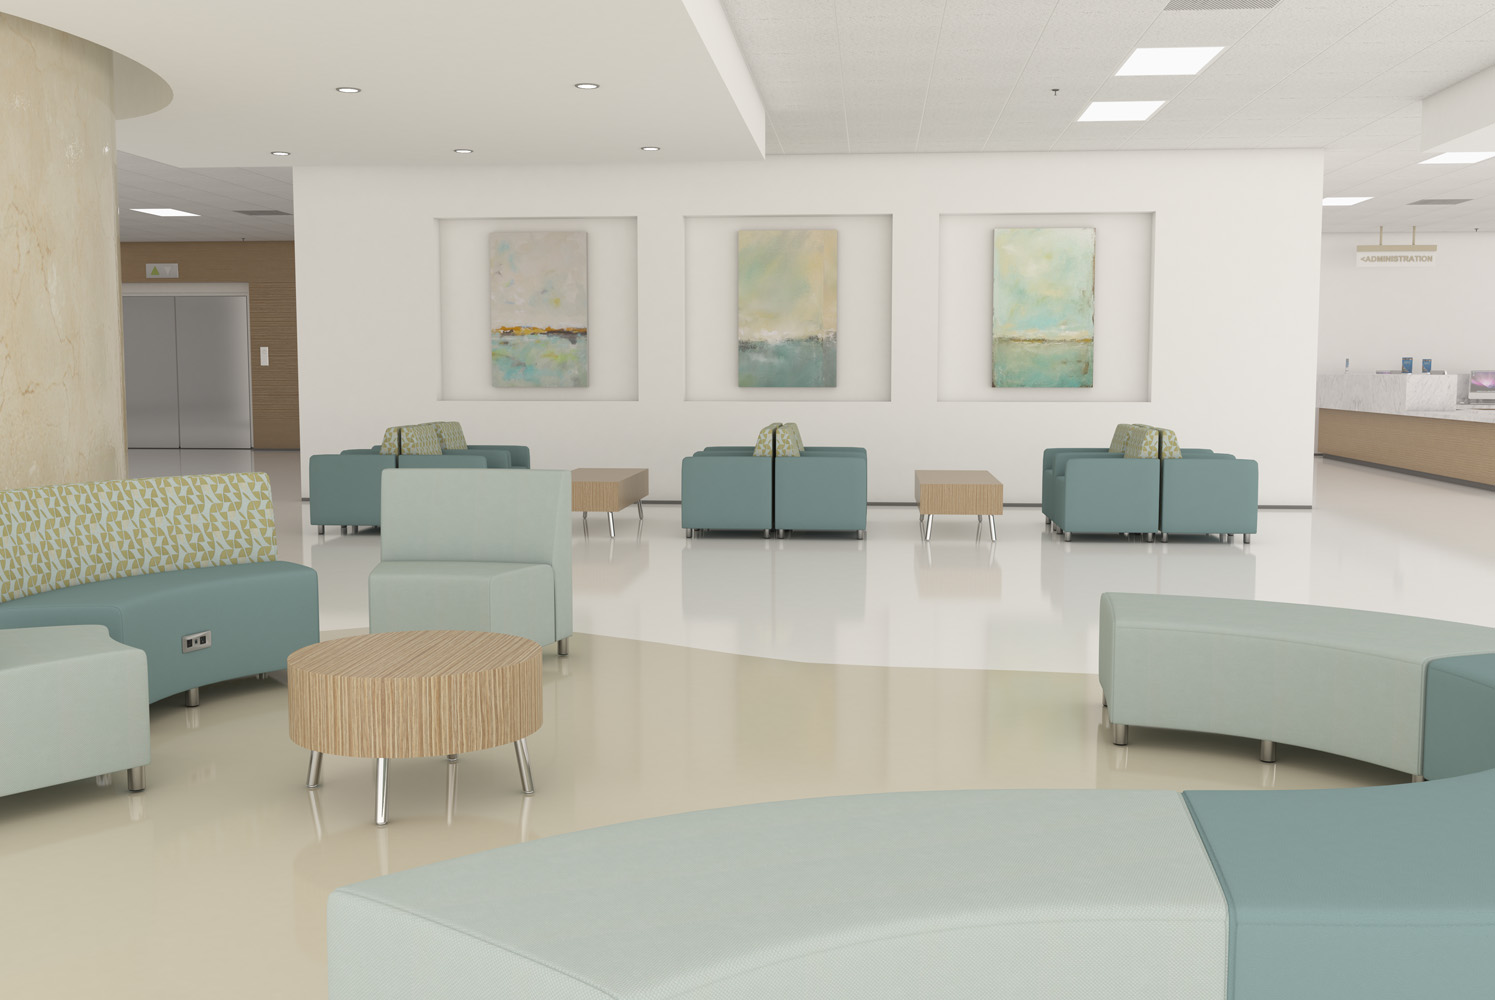 Lobby featuring Raven modular seating and Treno occasional tables